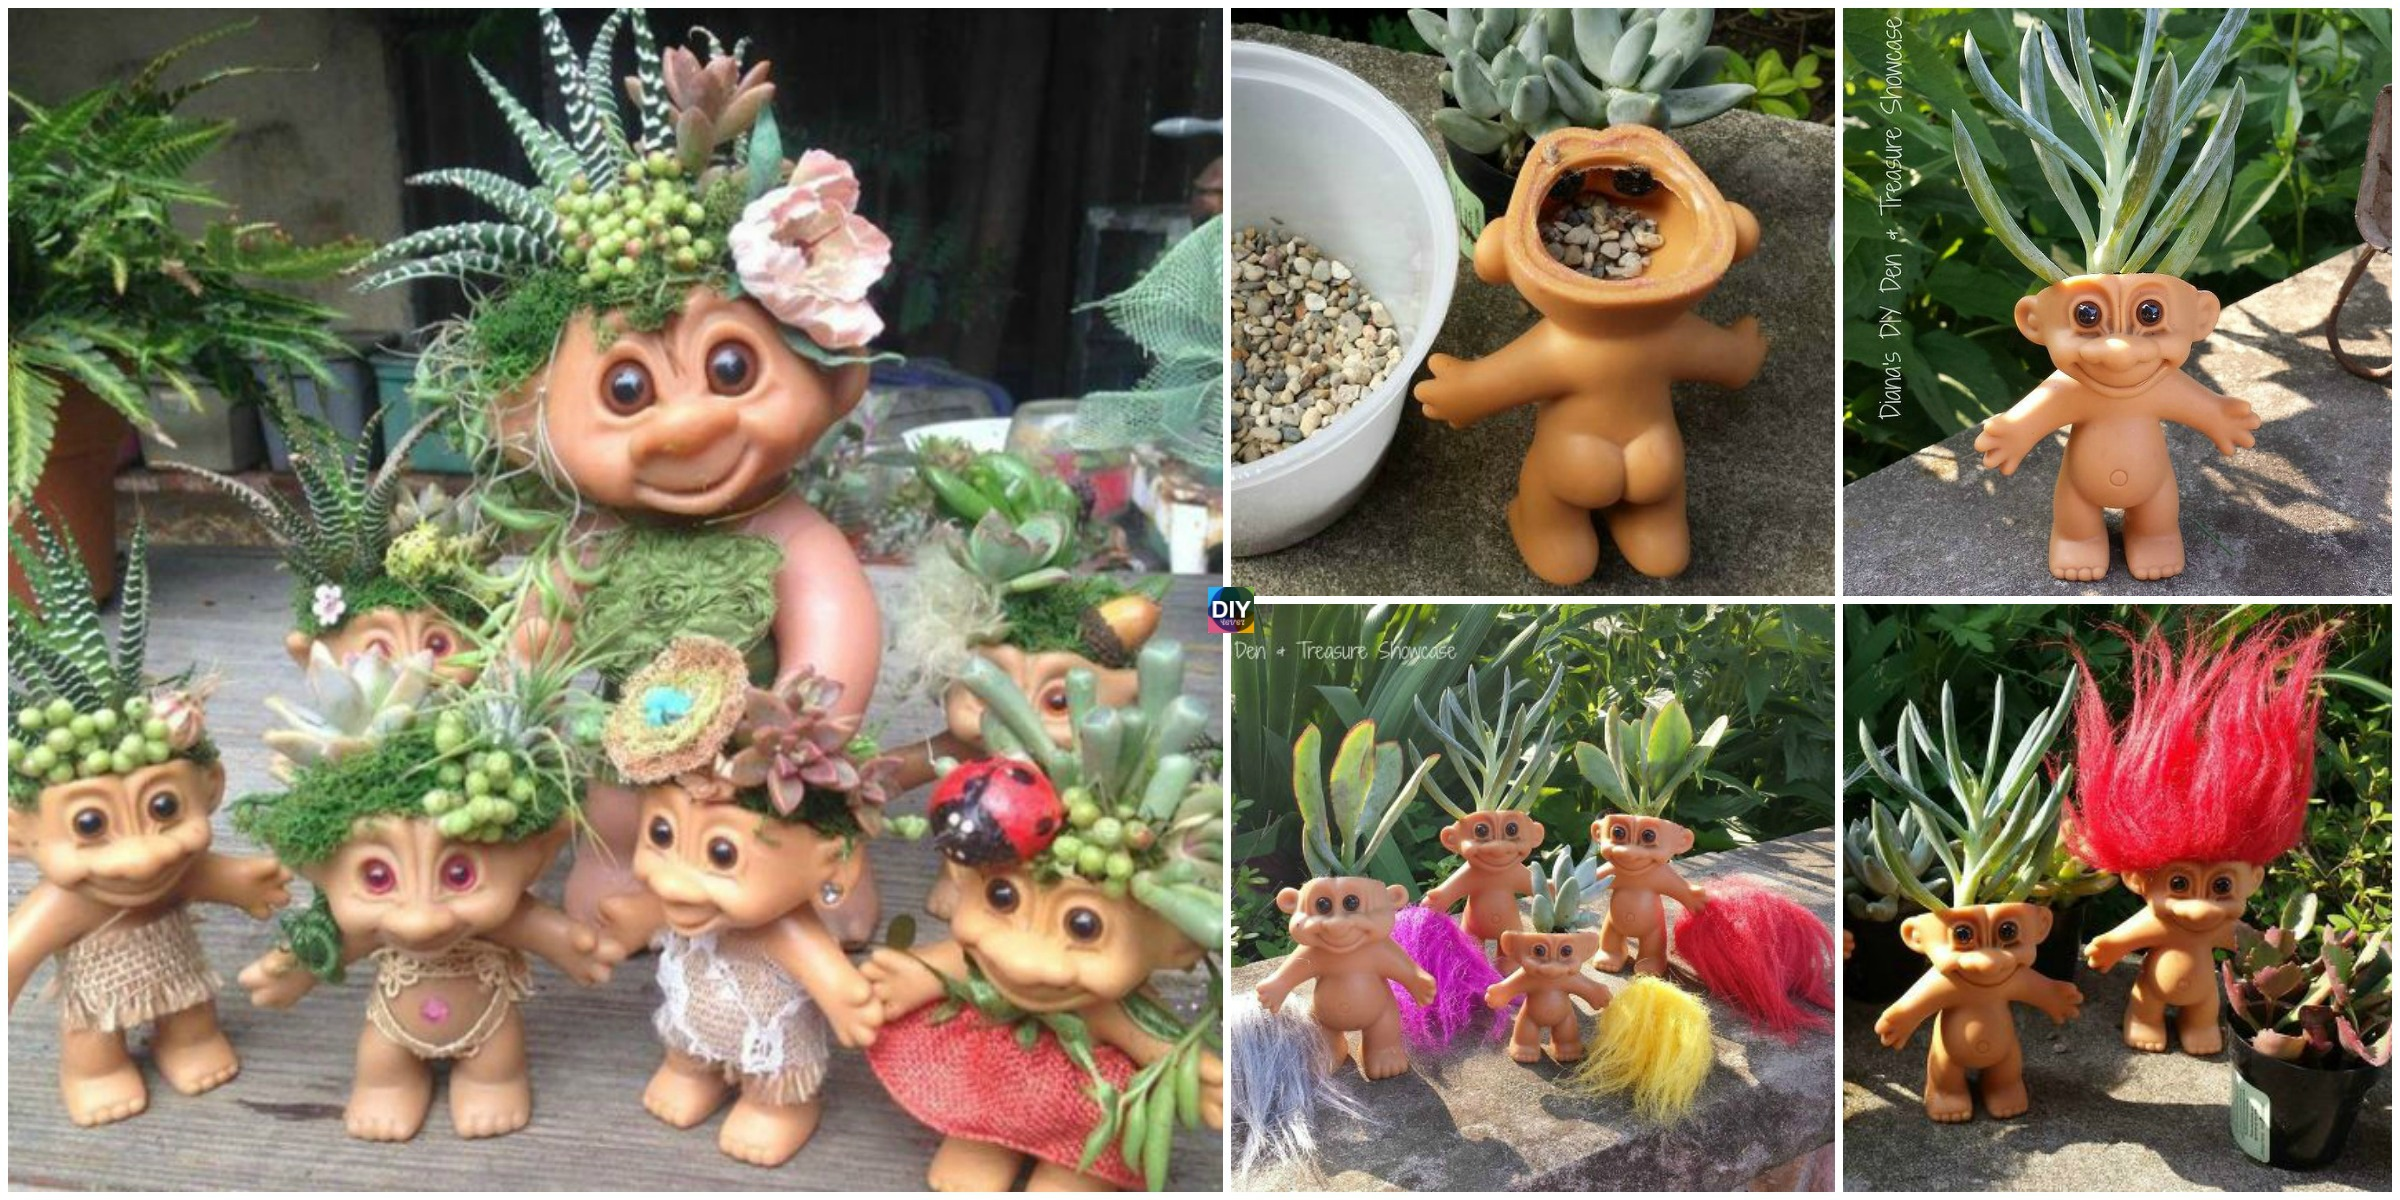 DIY Troll Doll Planters Tutorial & Video